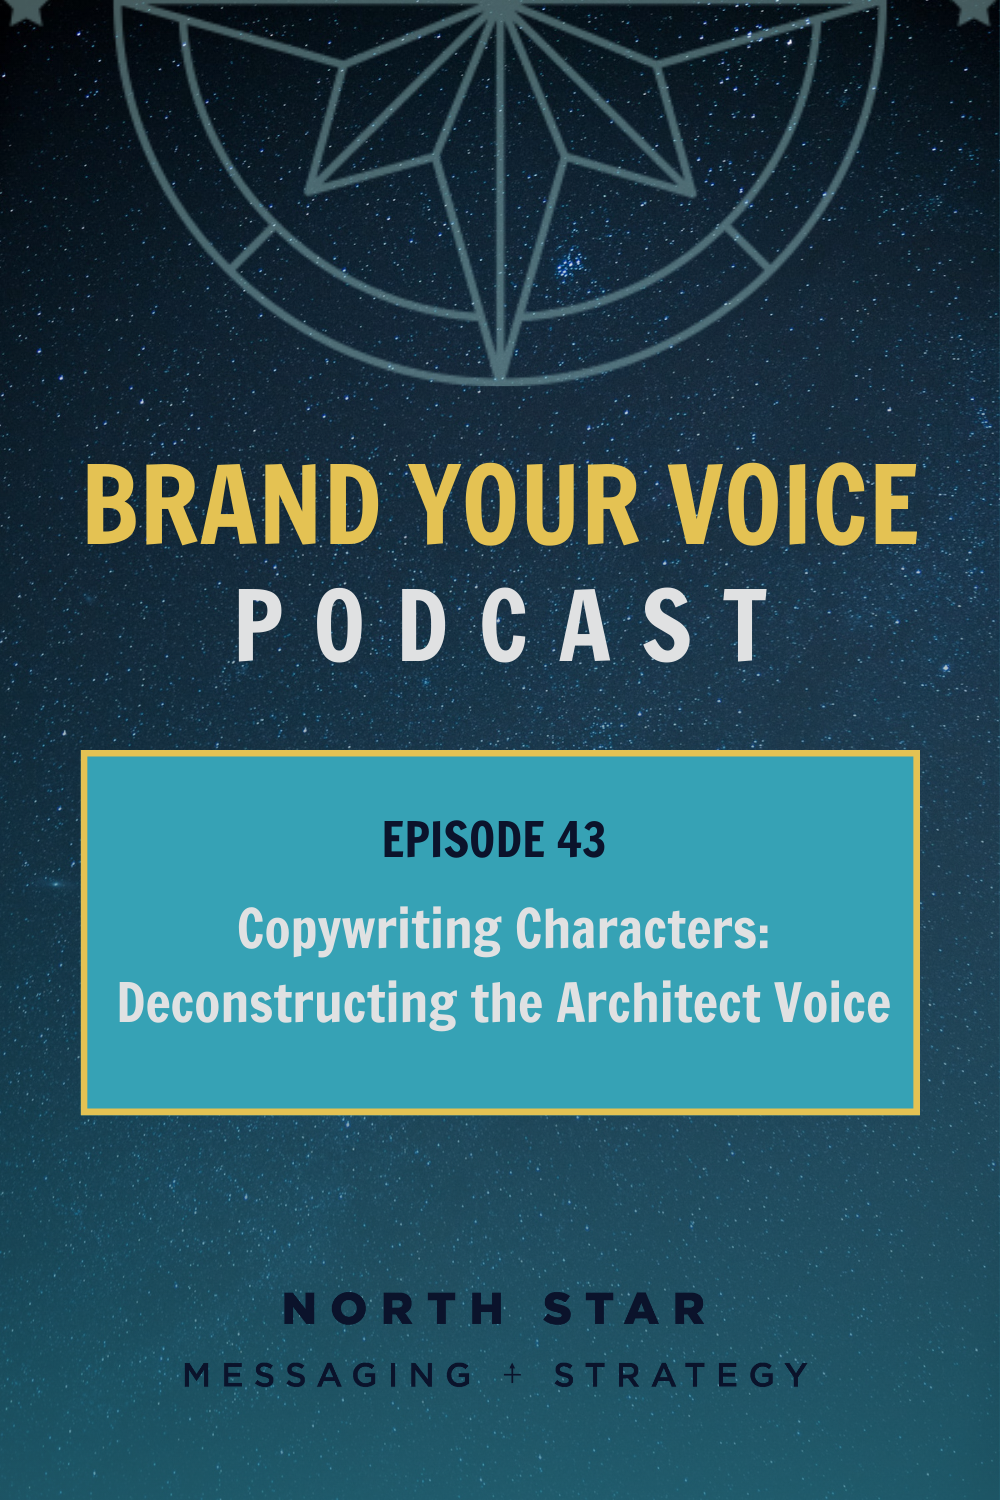 EPISODE 43: Copywriting Characters: Deconstructing the Architect Voice